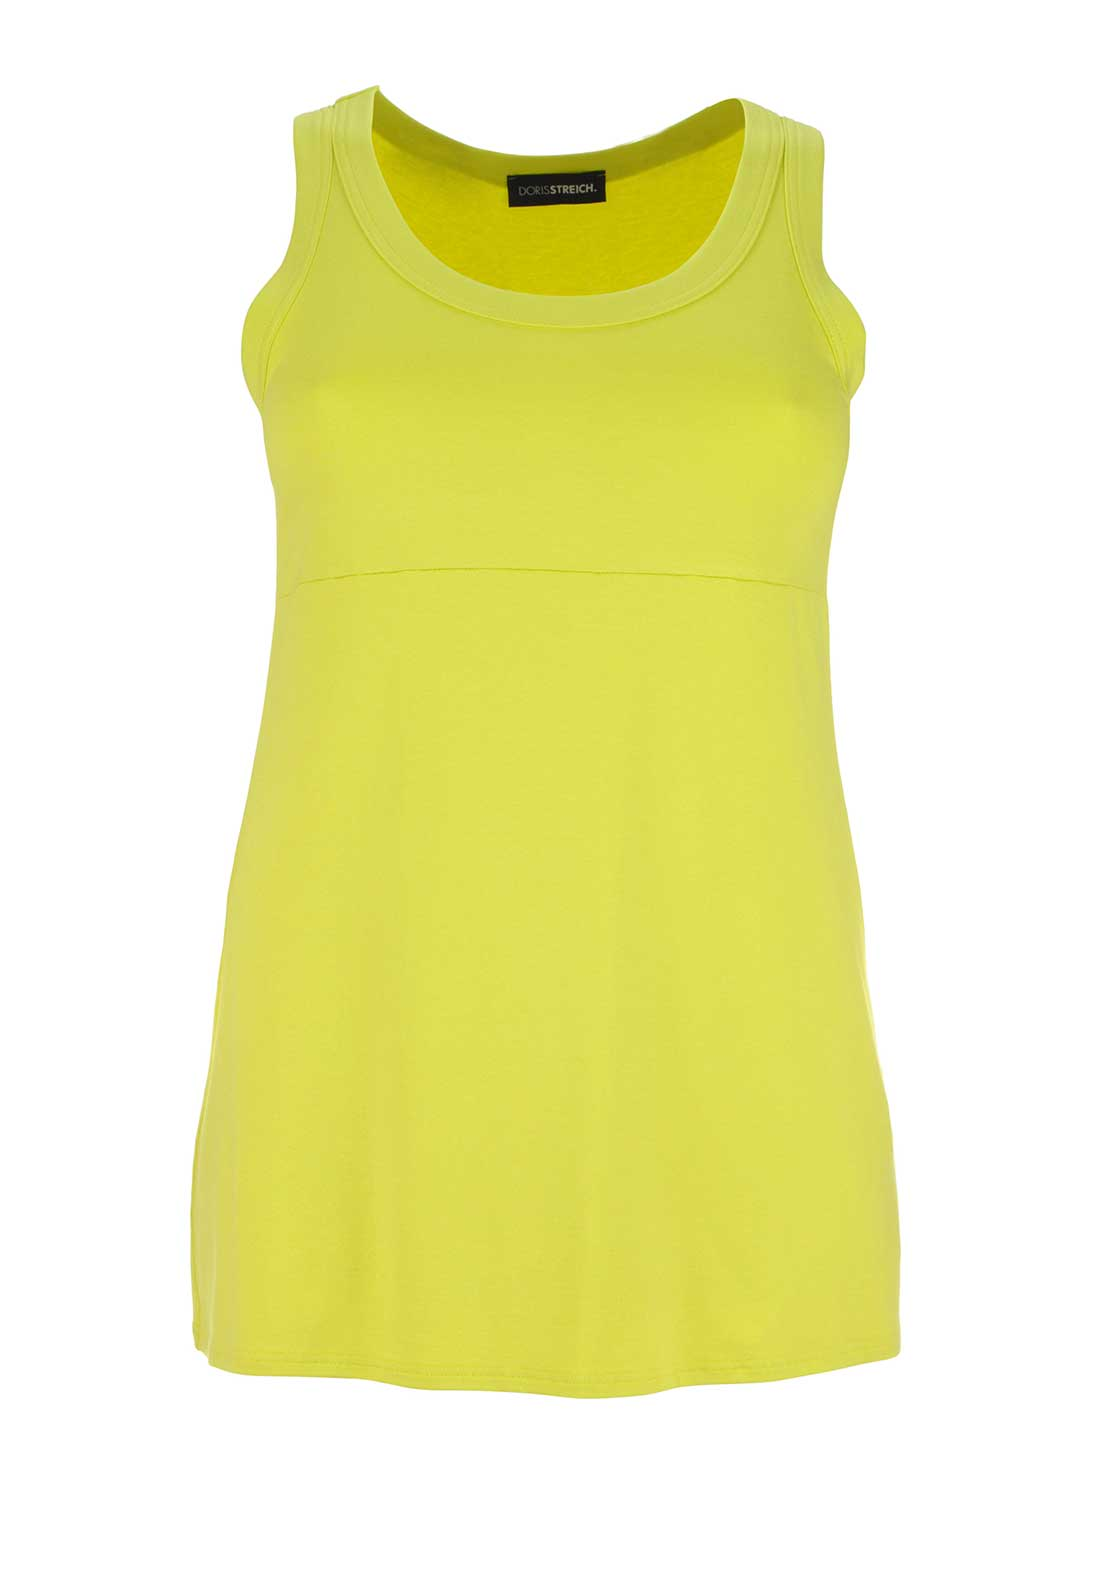 Doris Streich Long Length Sleeveless Vest Top, Lime Green